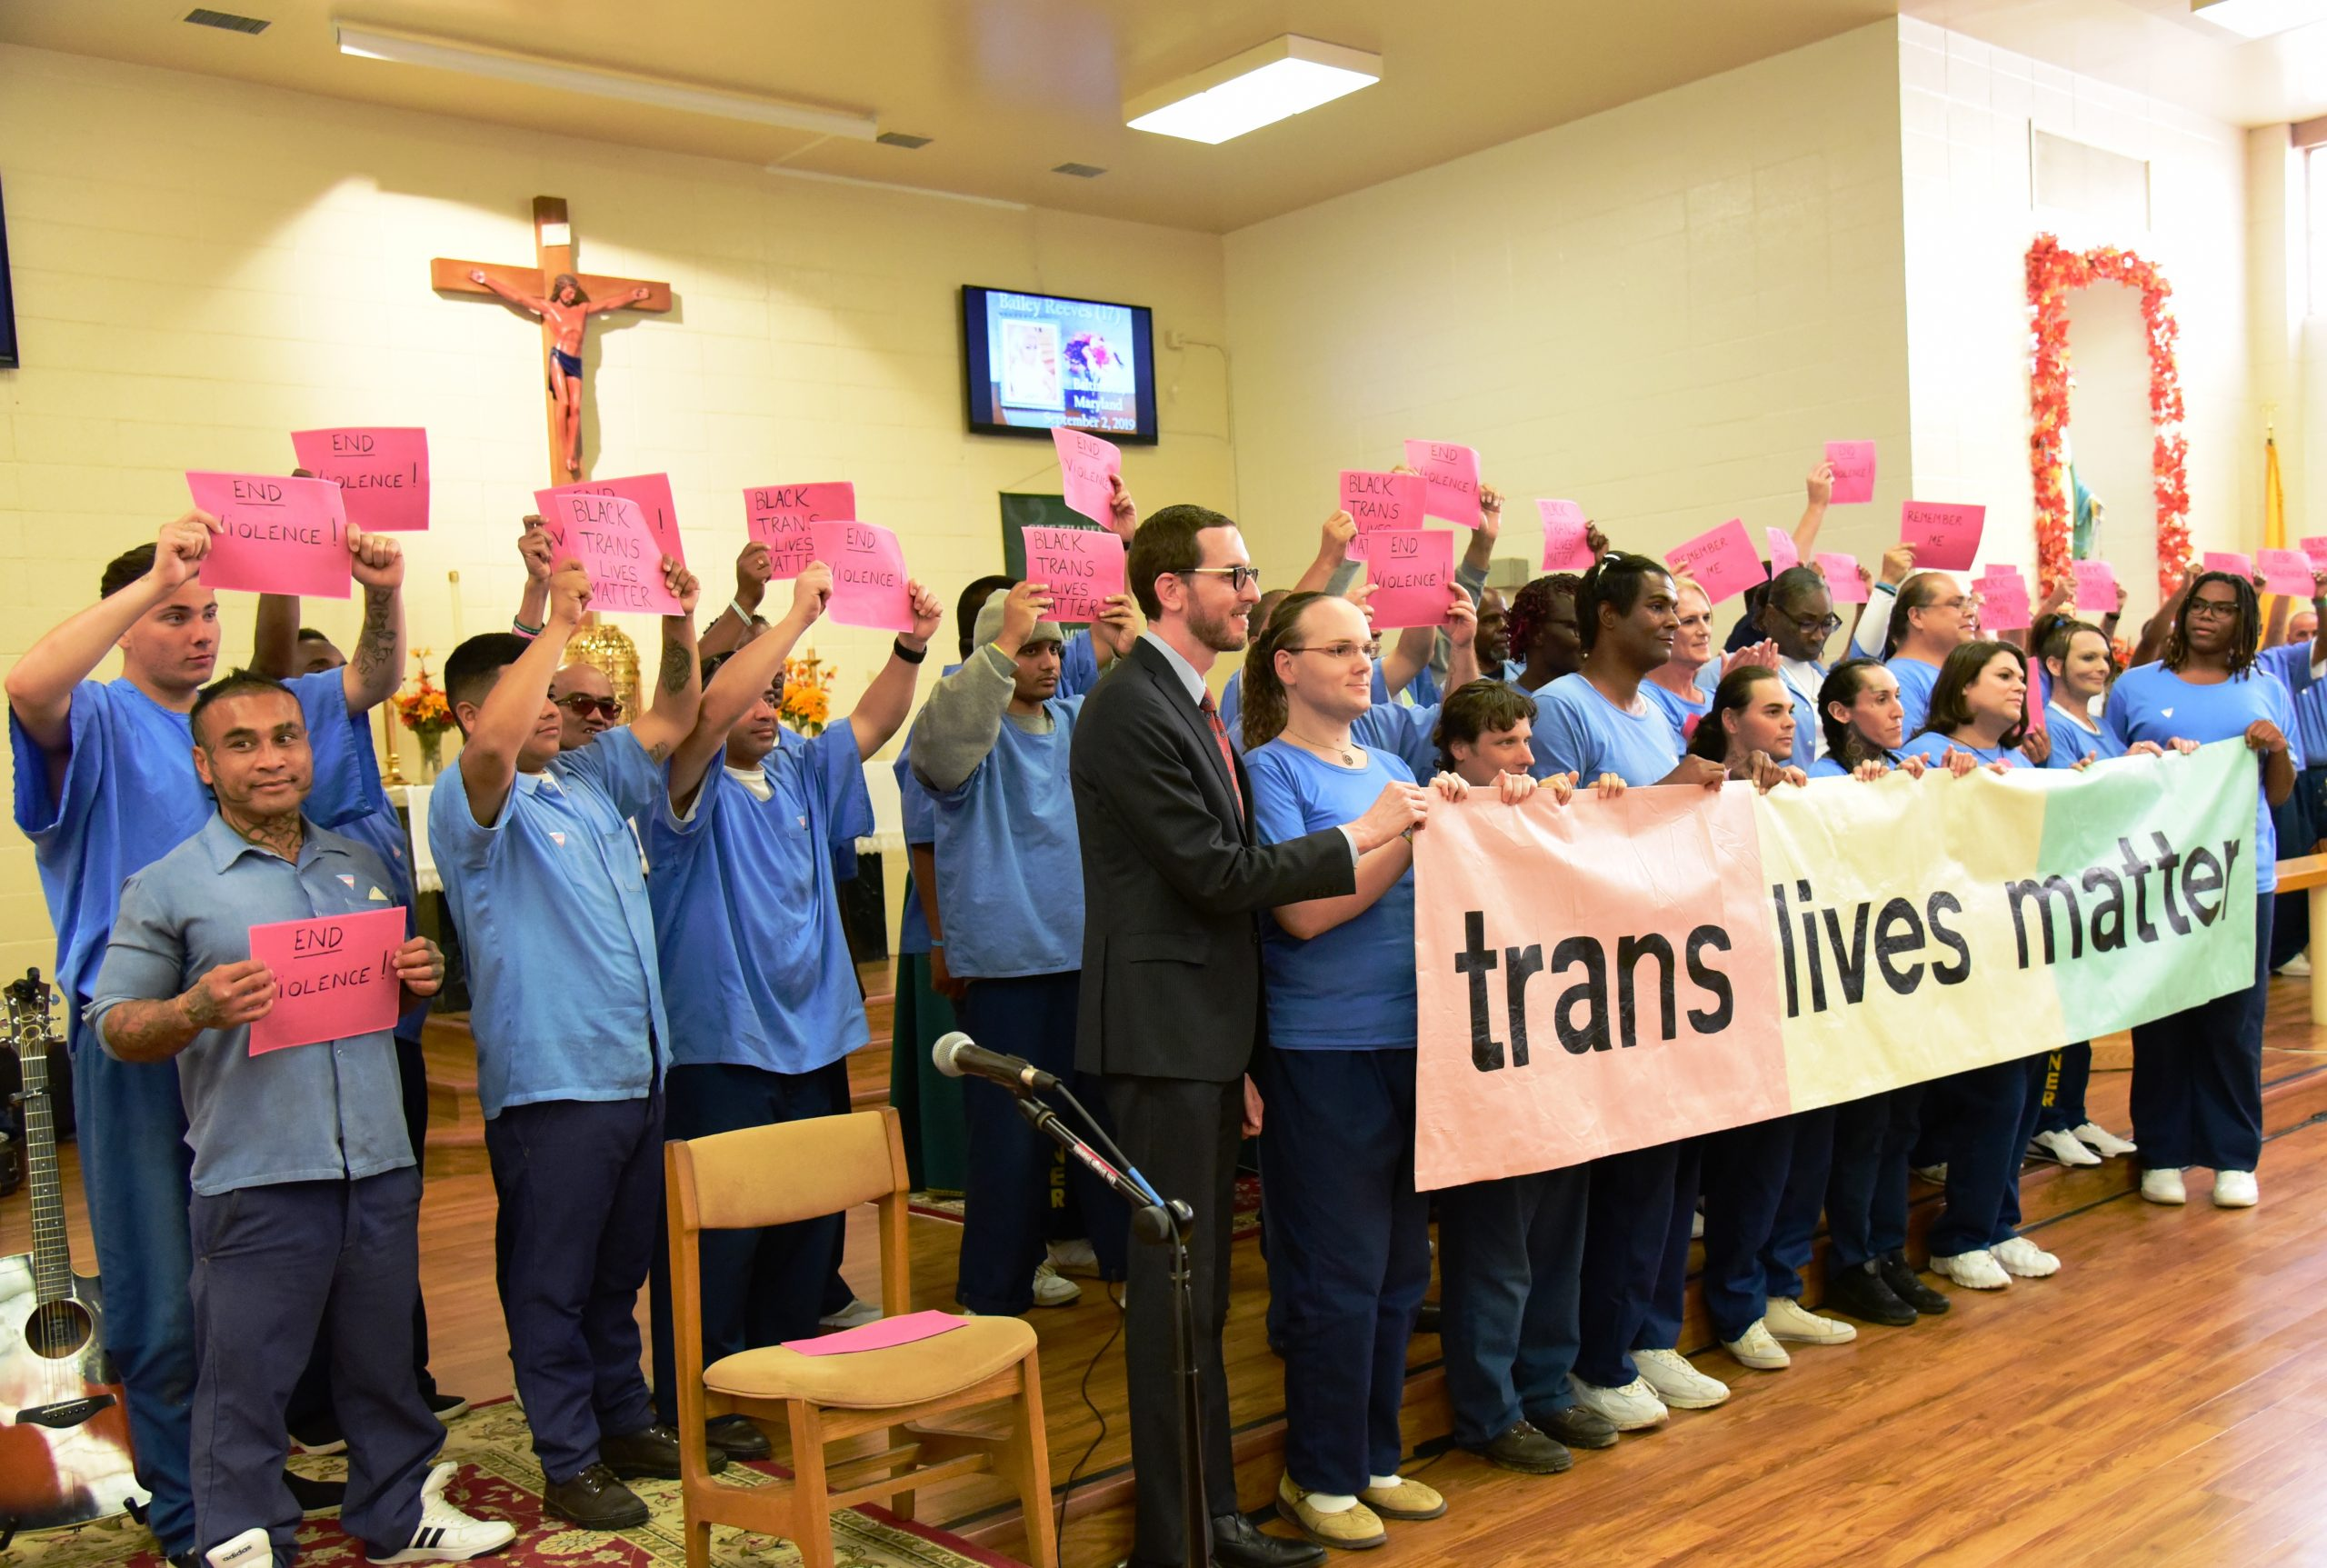 Group of people standing and holding sign that states trans lives matter